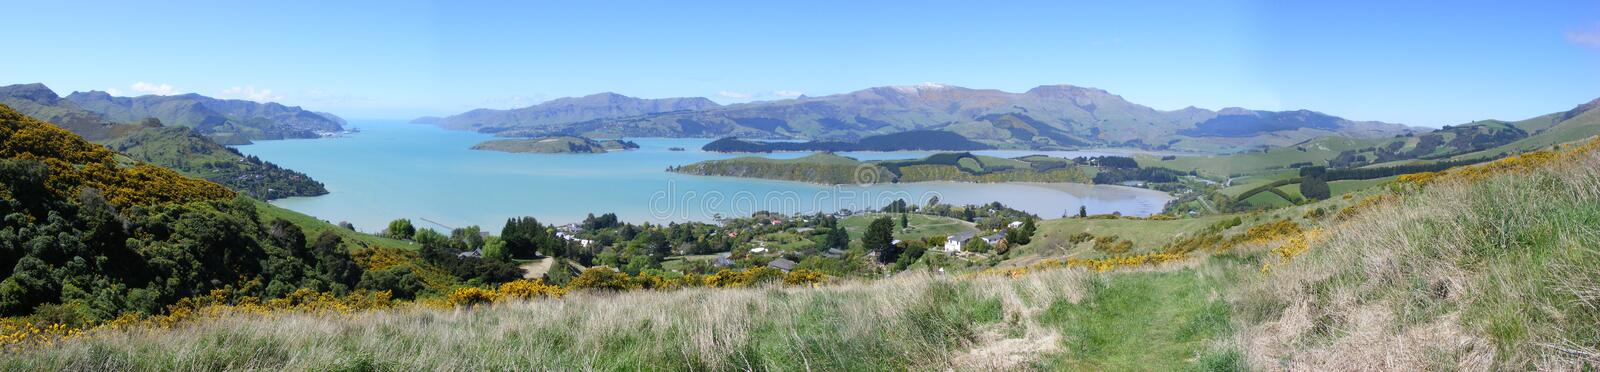 Download Governor Bay stock photo. Image of panoramic, grass, mountains - 11408814